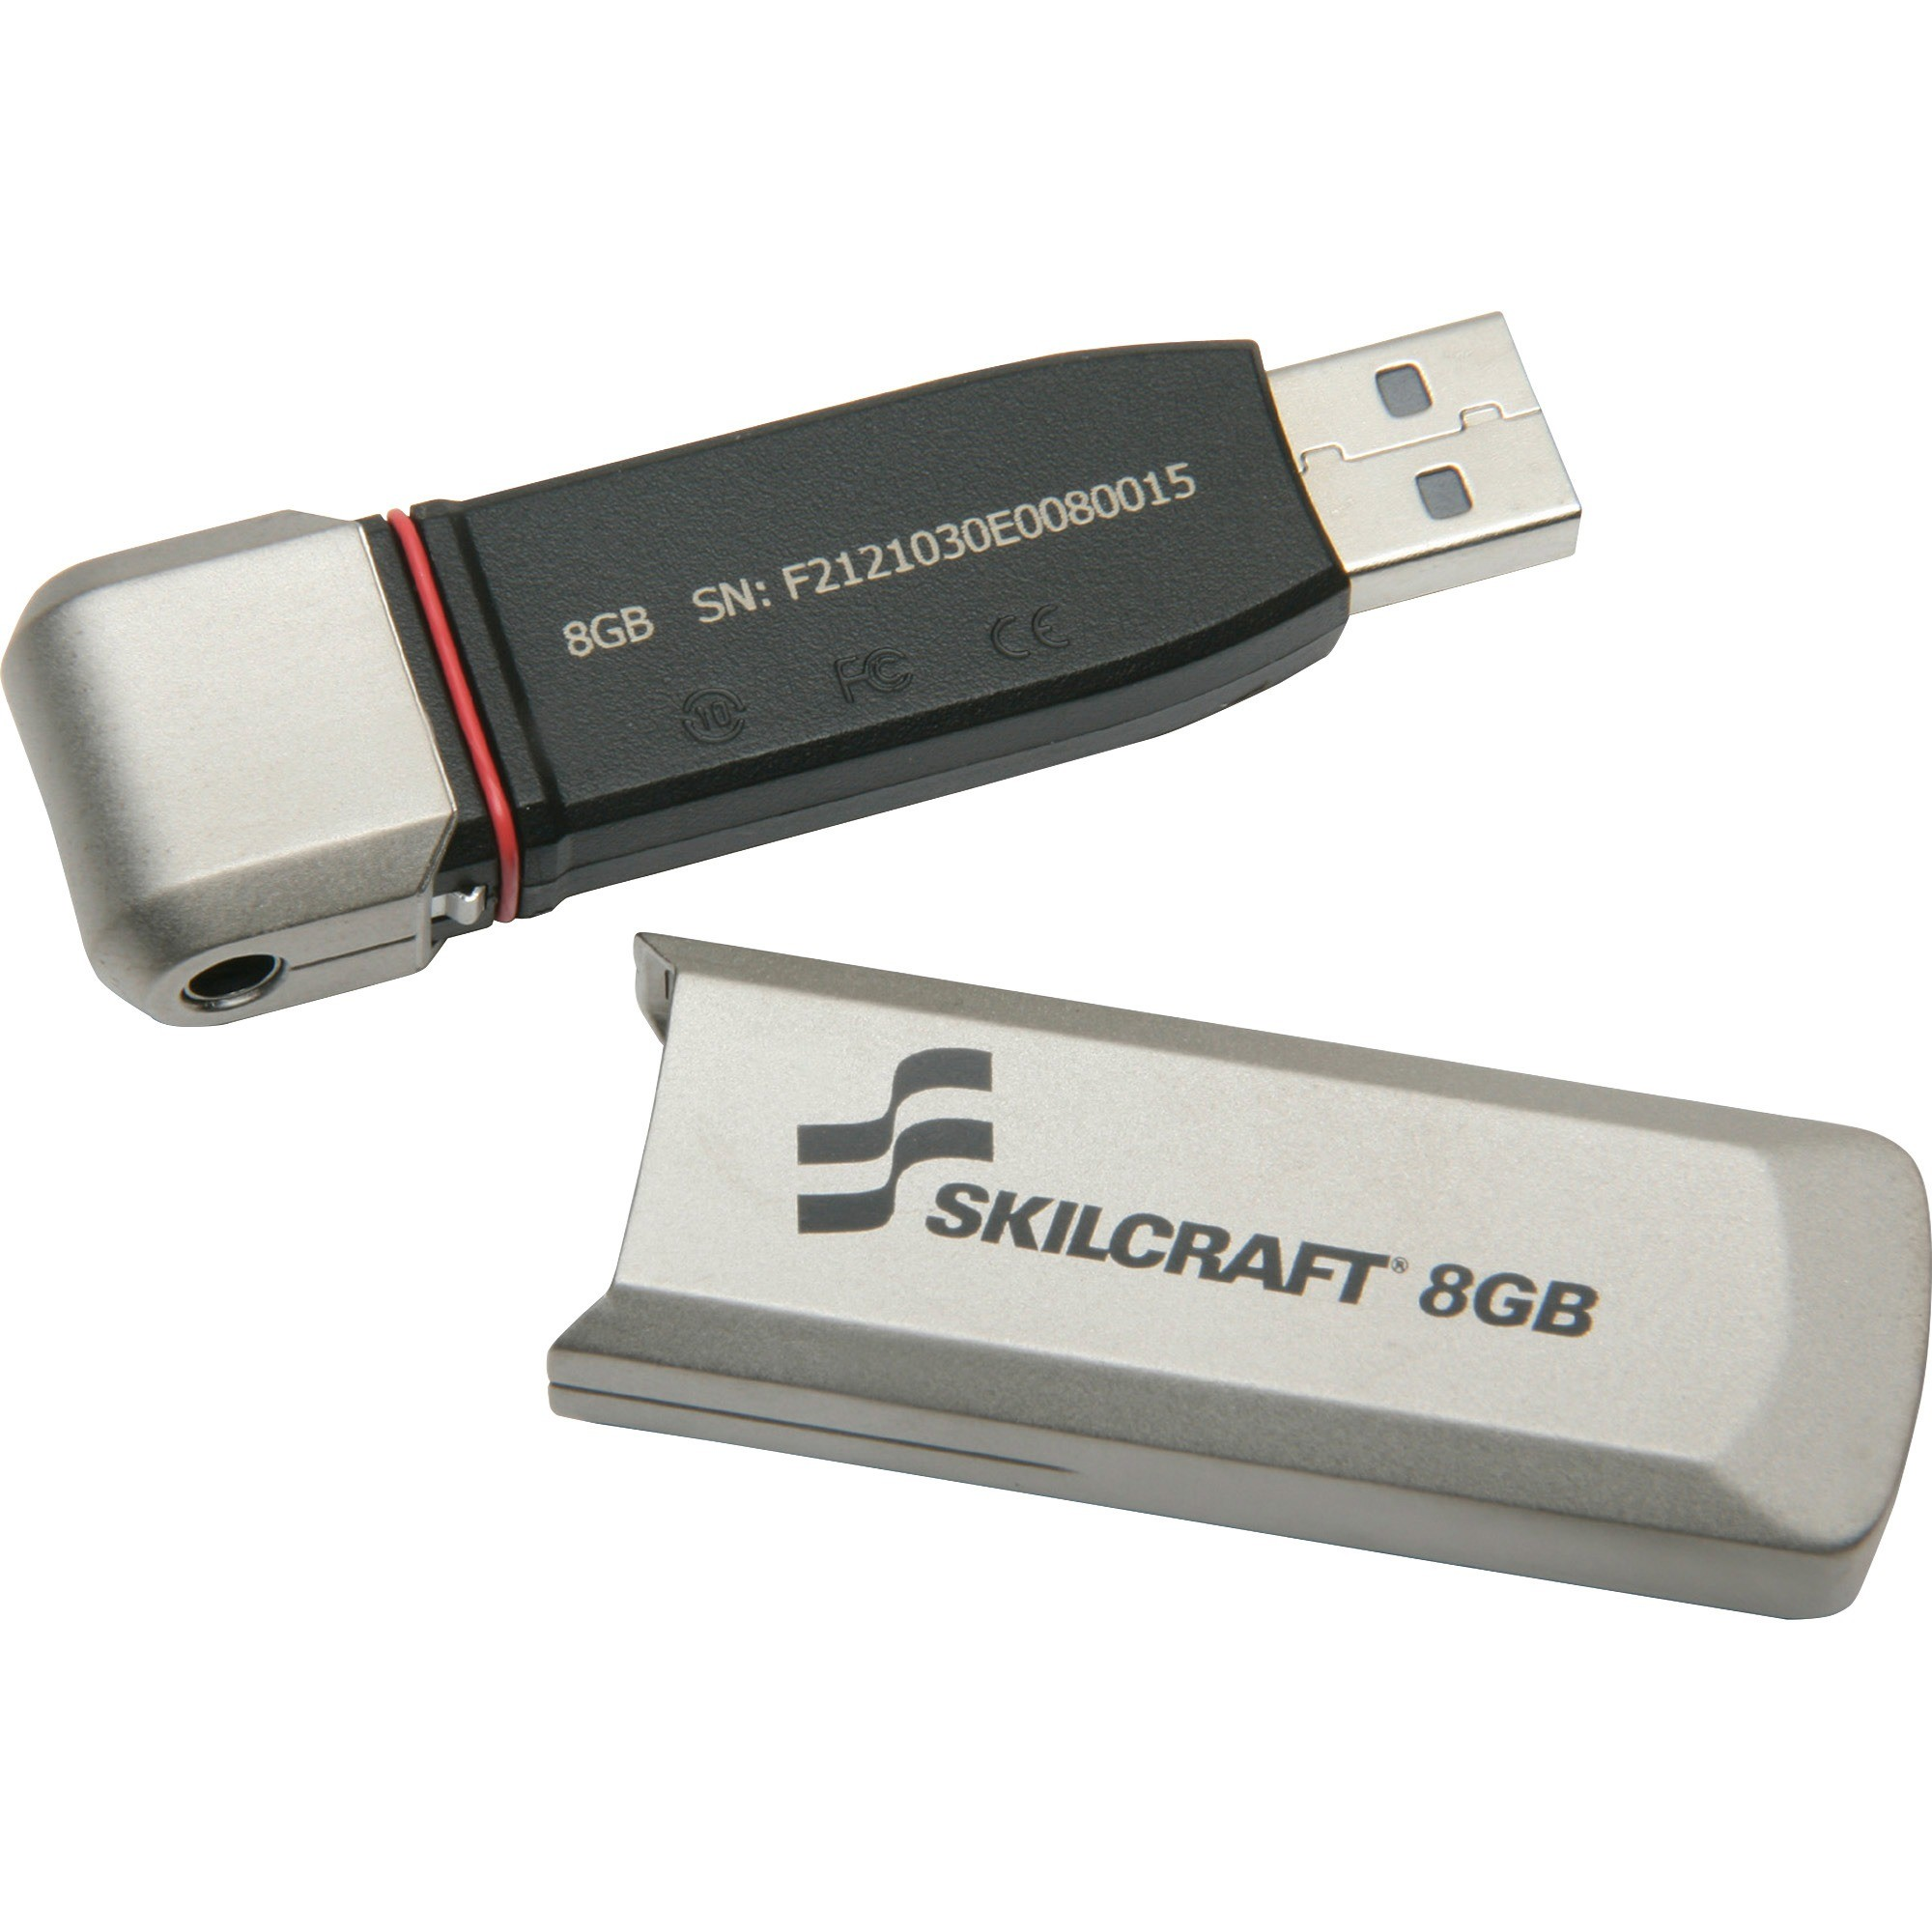 Skilcraft USB Flash Drive, 8GB, Level 3 5999351